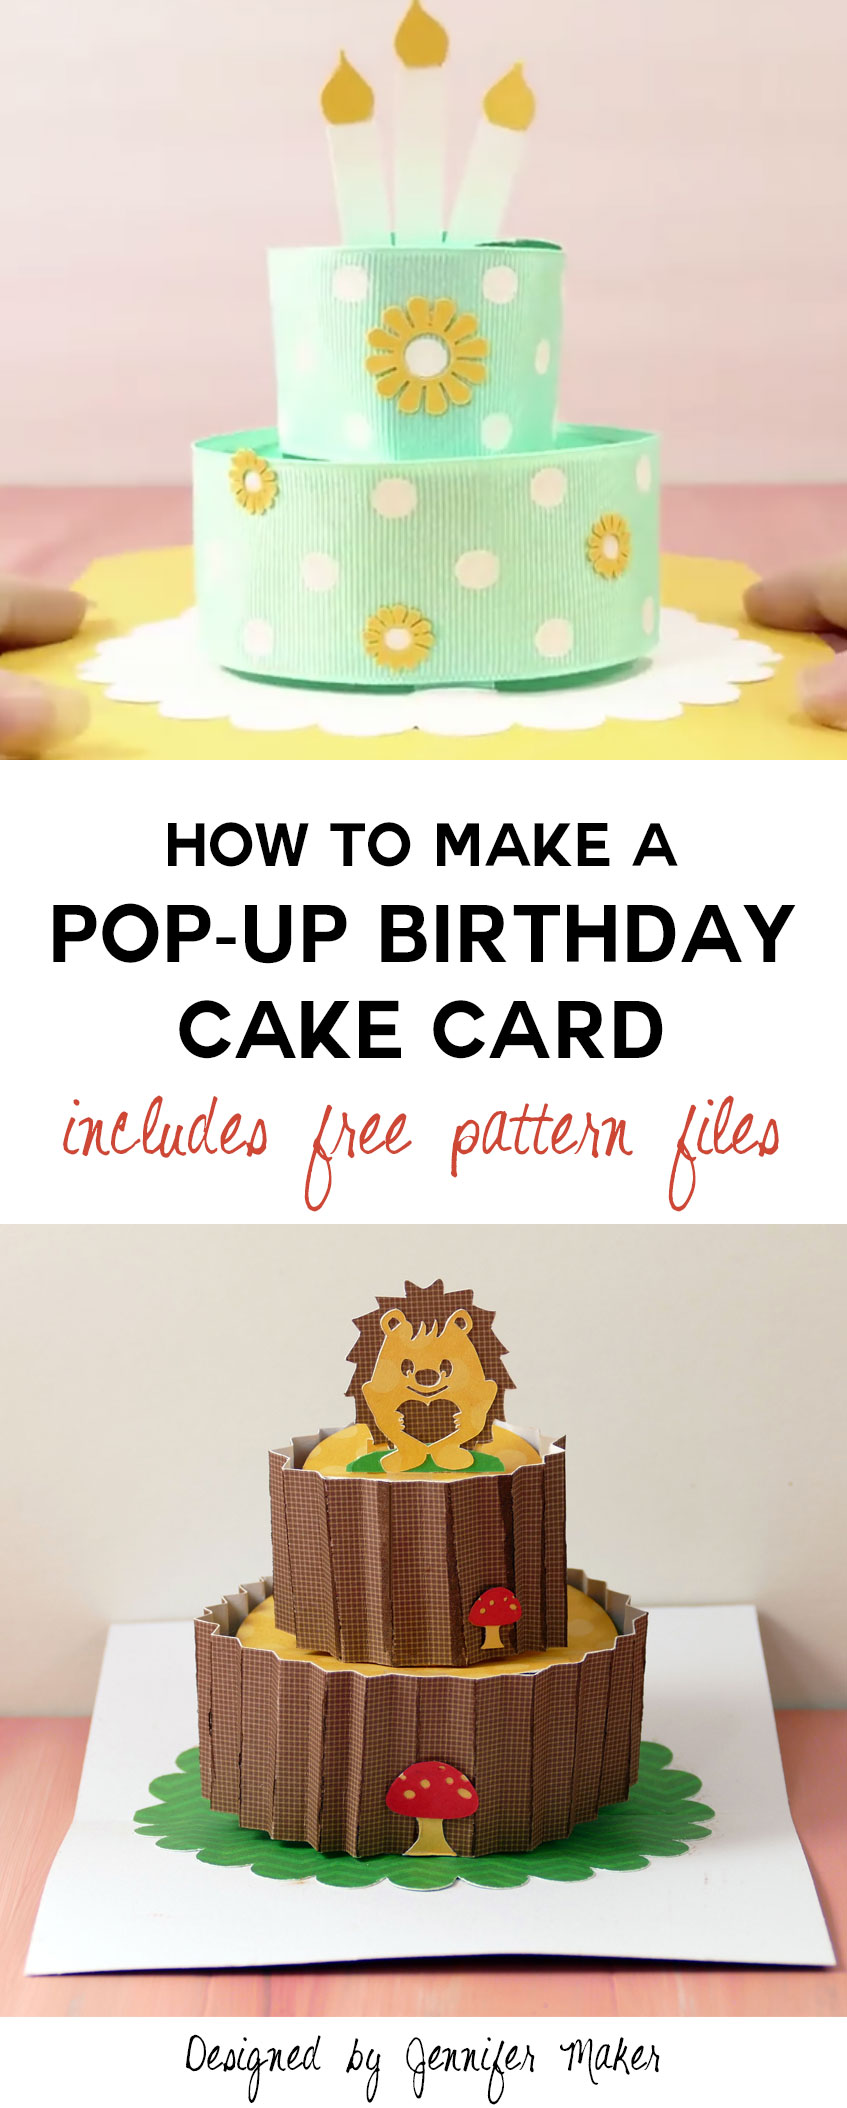 How to make a pop up birthday cake card jennifer maker make a pop up birthday cake card with free pattern and svg files bookmarktalkfo Choice Image